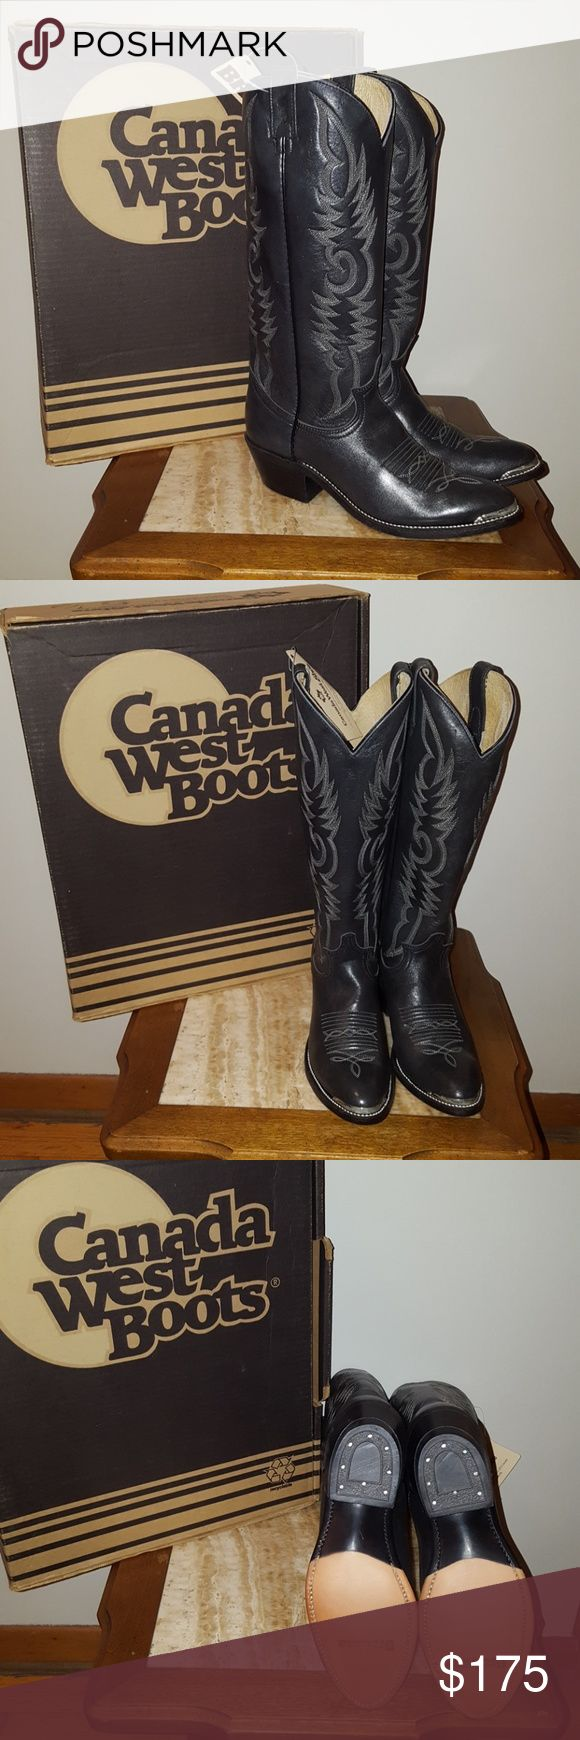 Ladies Western Boots NWT Ladies all leather western boots. Brahma by Canada West, 2 pairs sizes 7 and  5 1/2, dark gray with off white stitching and silver metal toe cap.  Gorgeous boots. Canada West Shoes